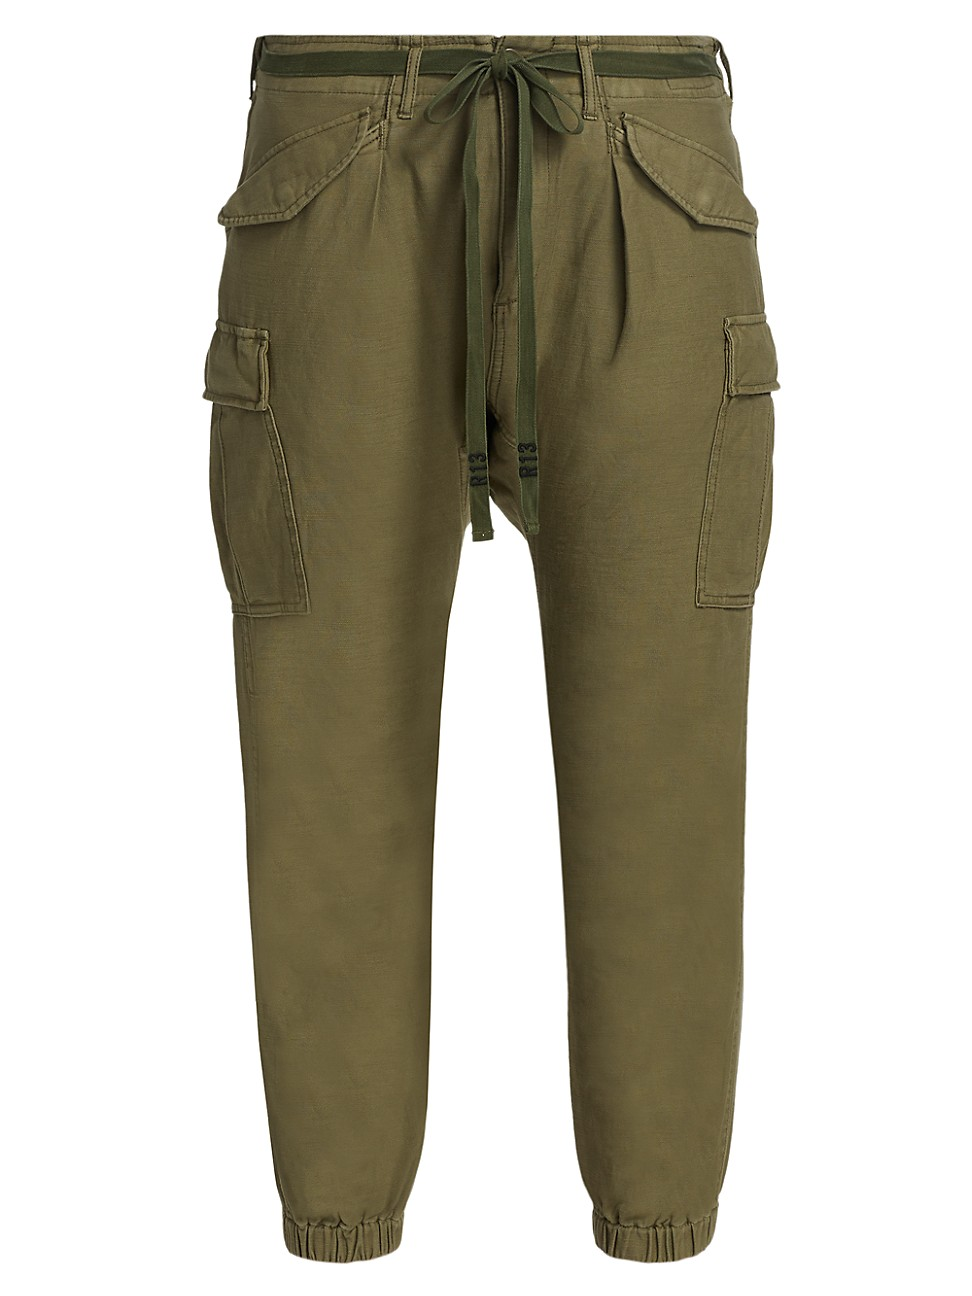 R13 Cottons WOMEN'S DROP CROTCH CARGO PANTS